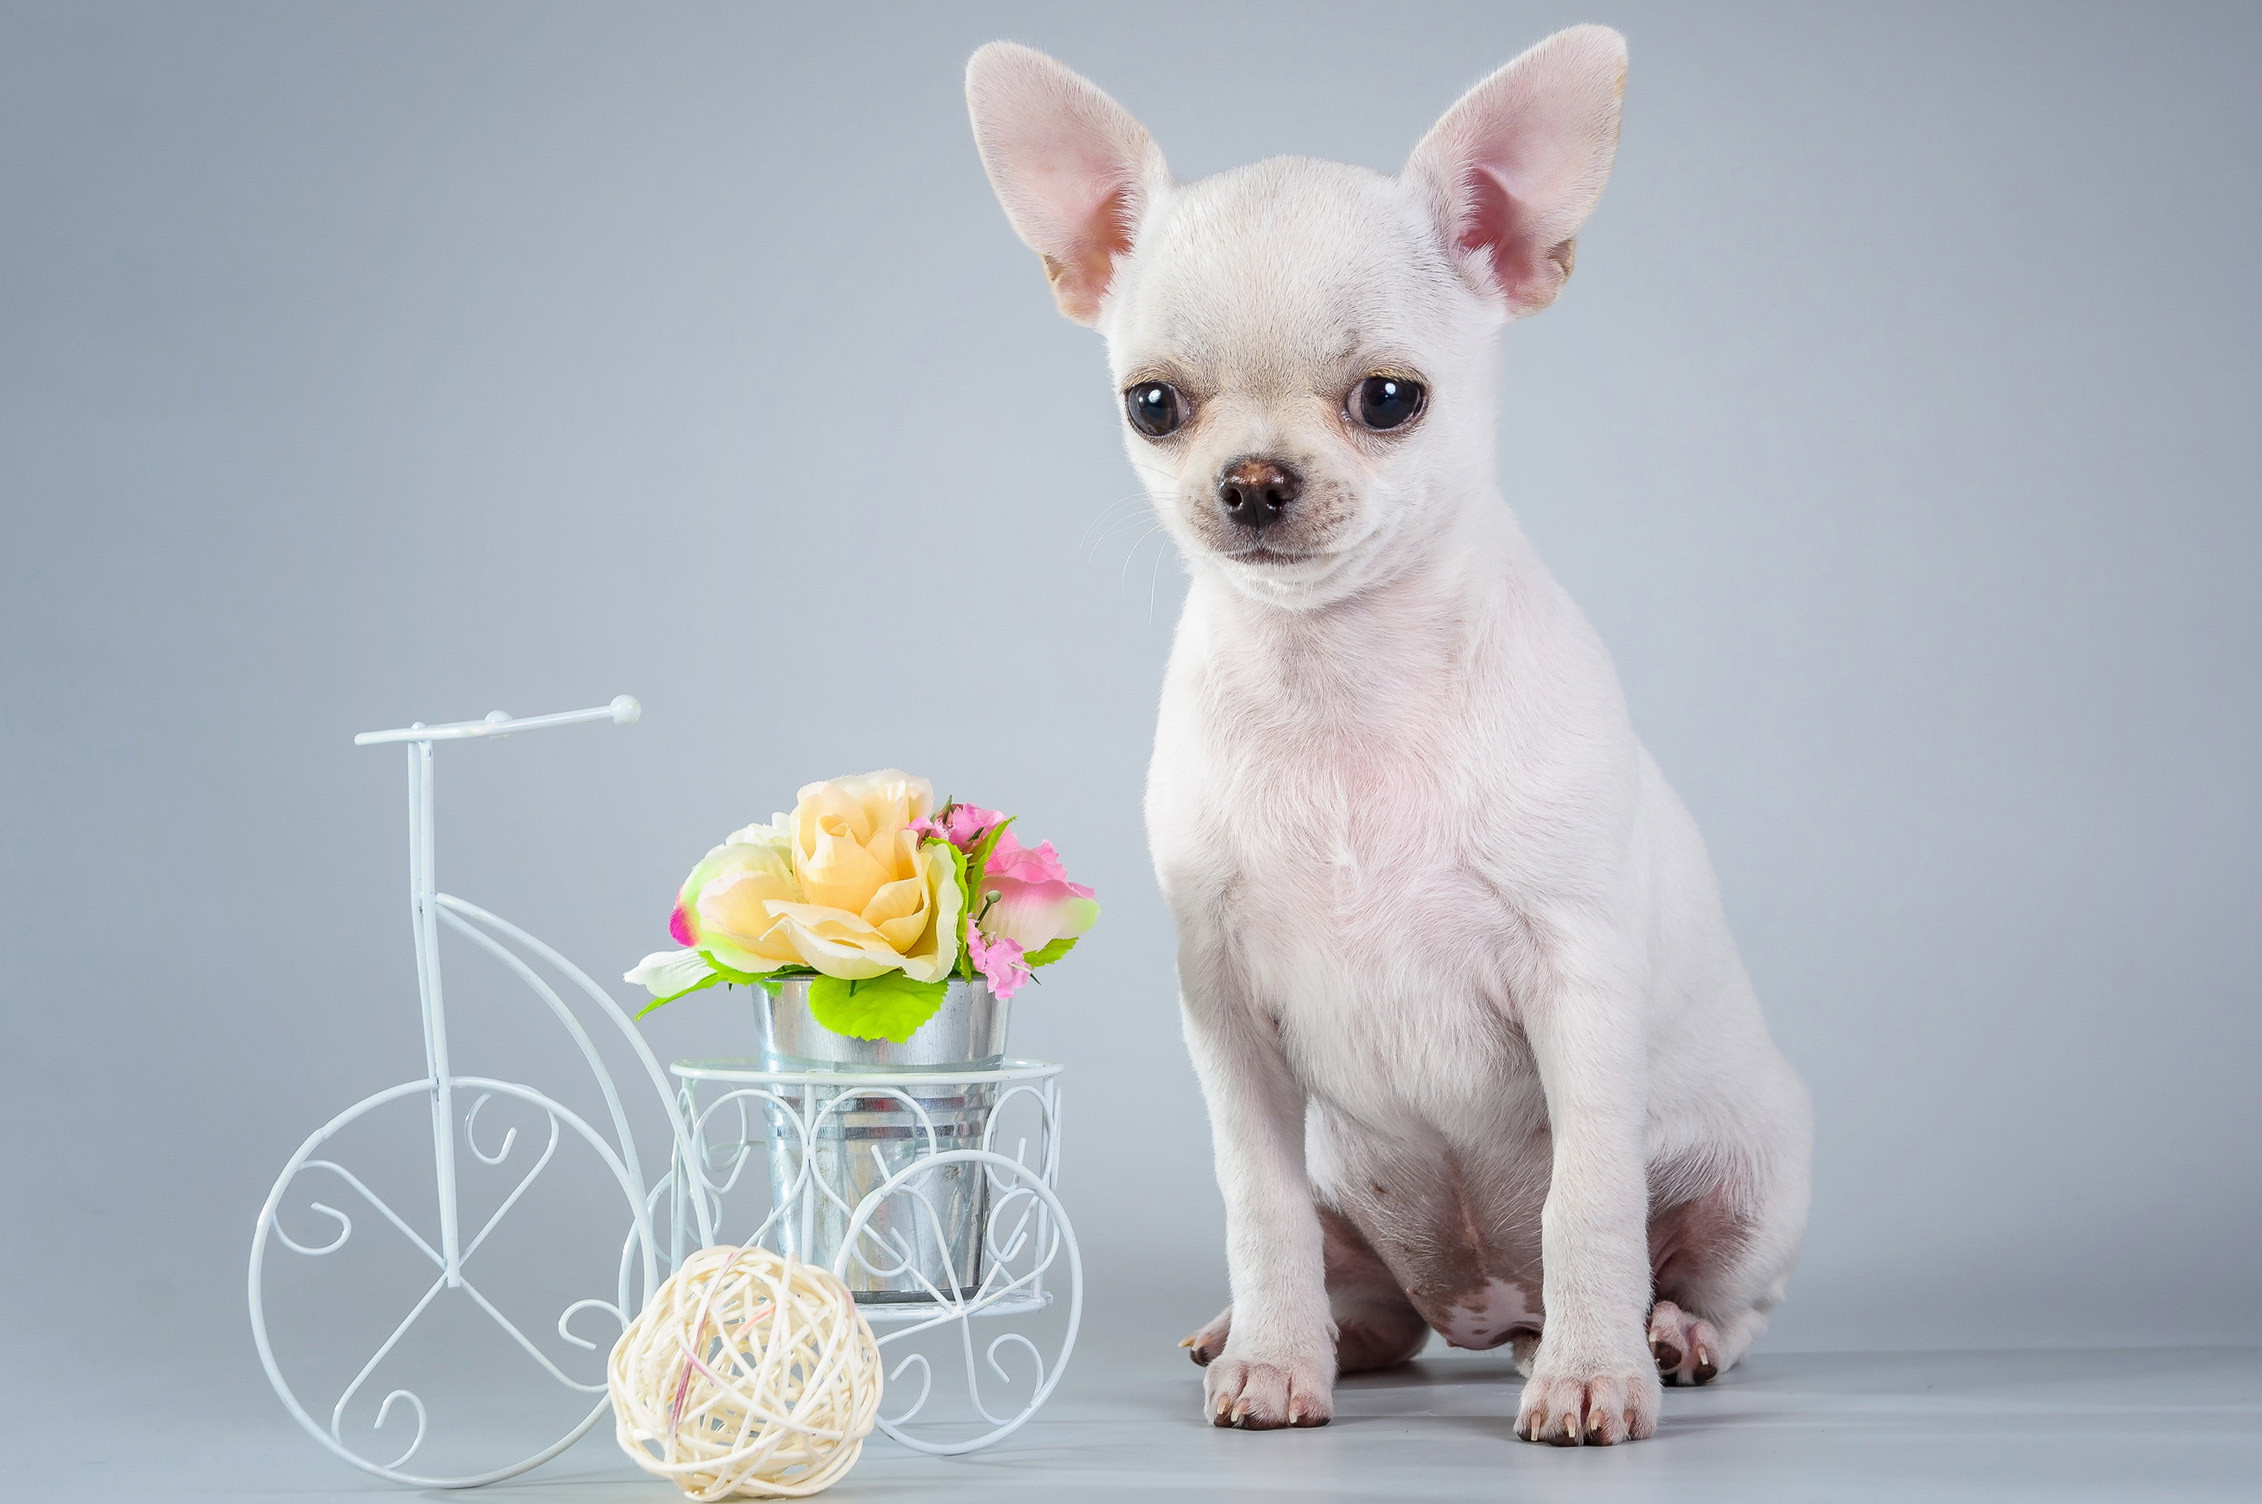 Cute Animals Wallpapers Free Download: Dog Backgrounds (57+ Images